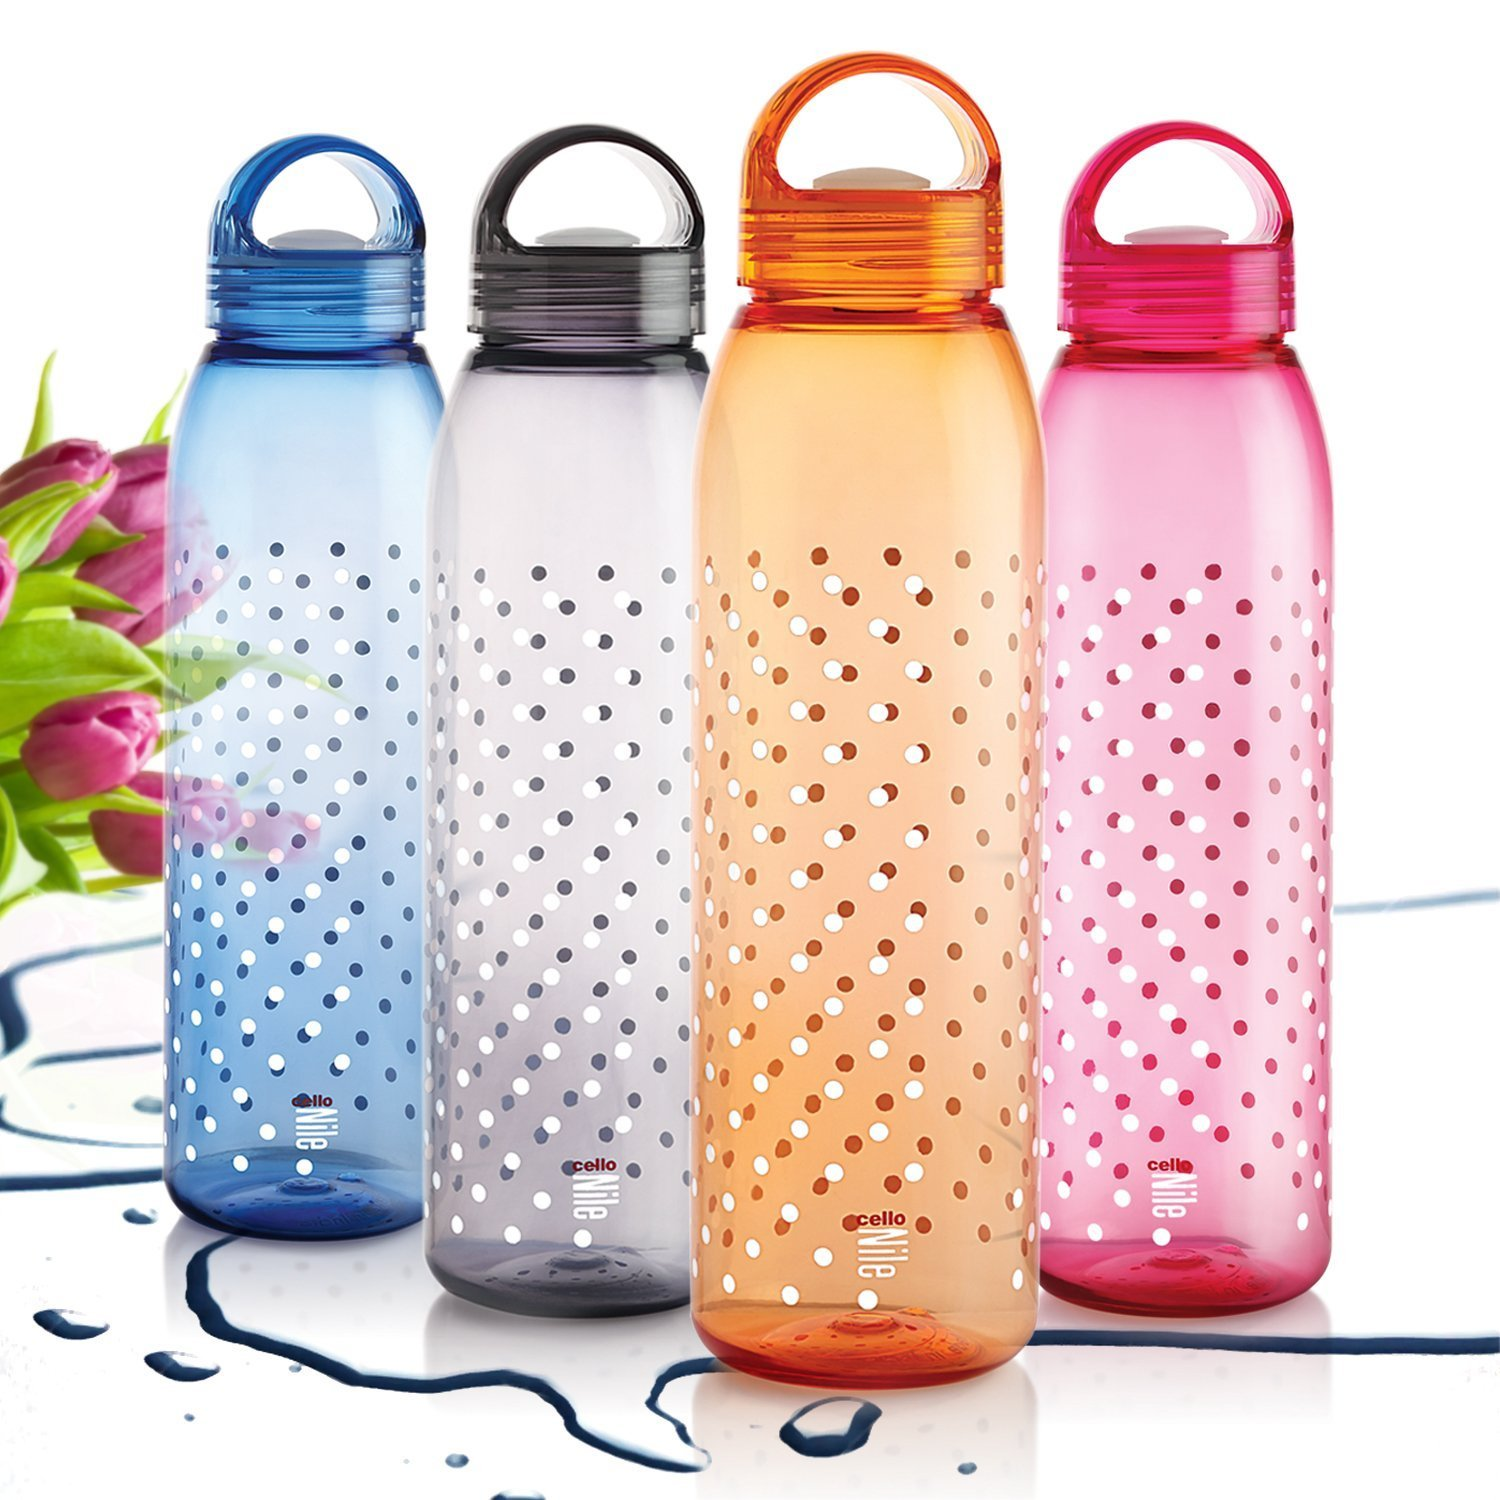 Cello NILE 1000 ML WATER BOTTLES  MULTICOLOR  SET OF 4